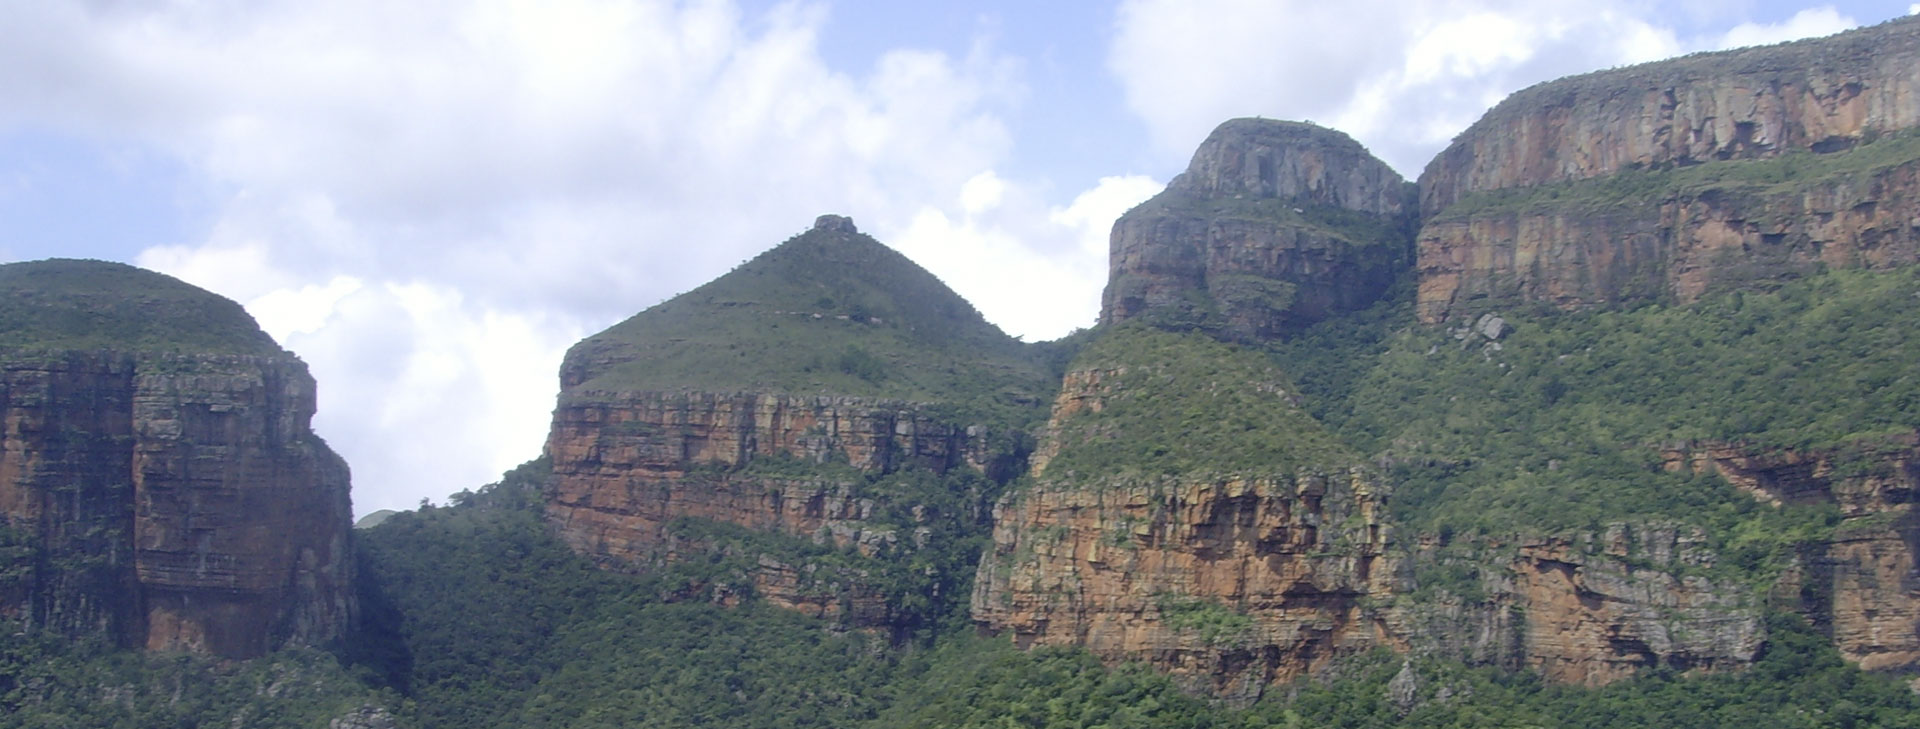 the Three Rondavels are one of the major icons of the Mpumalanga Province